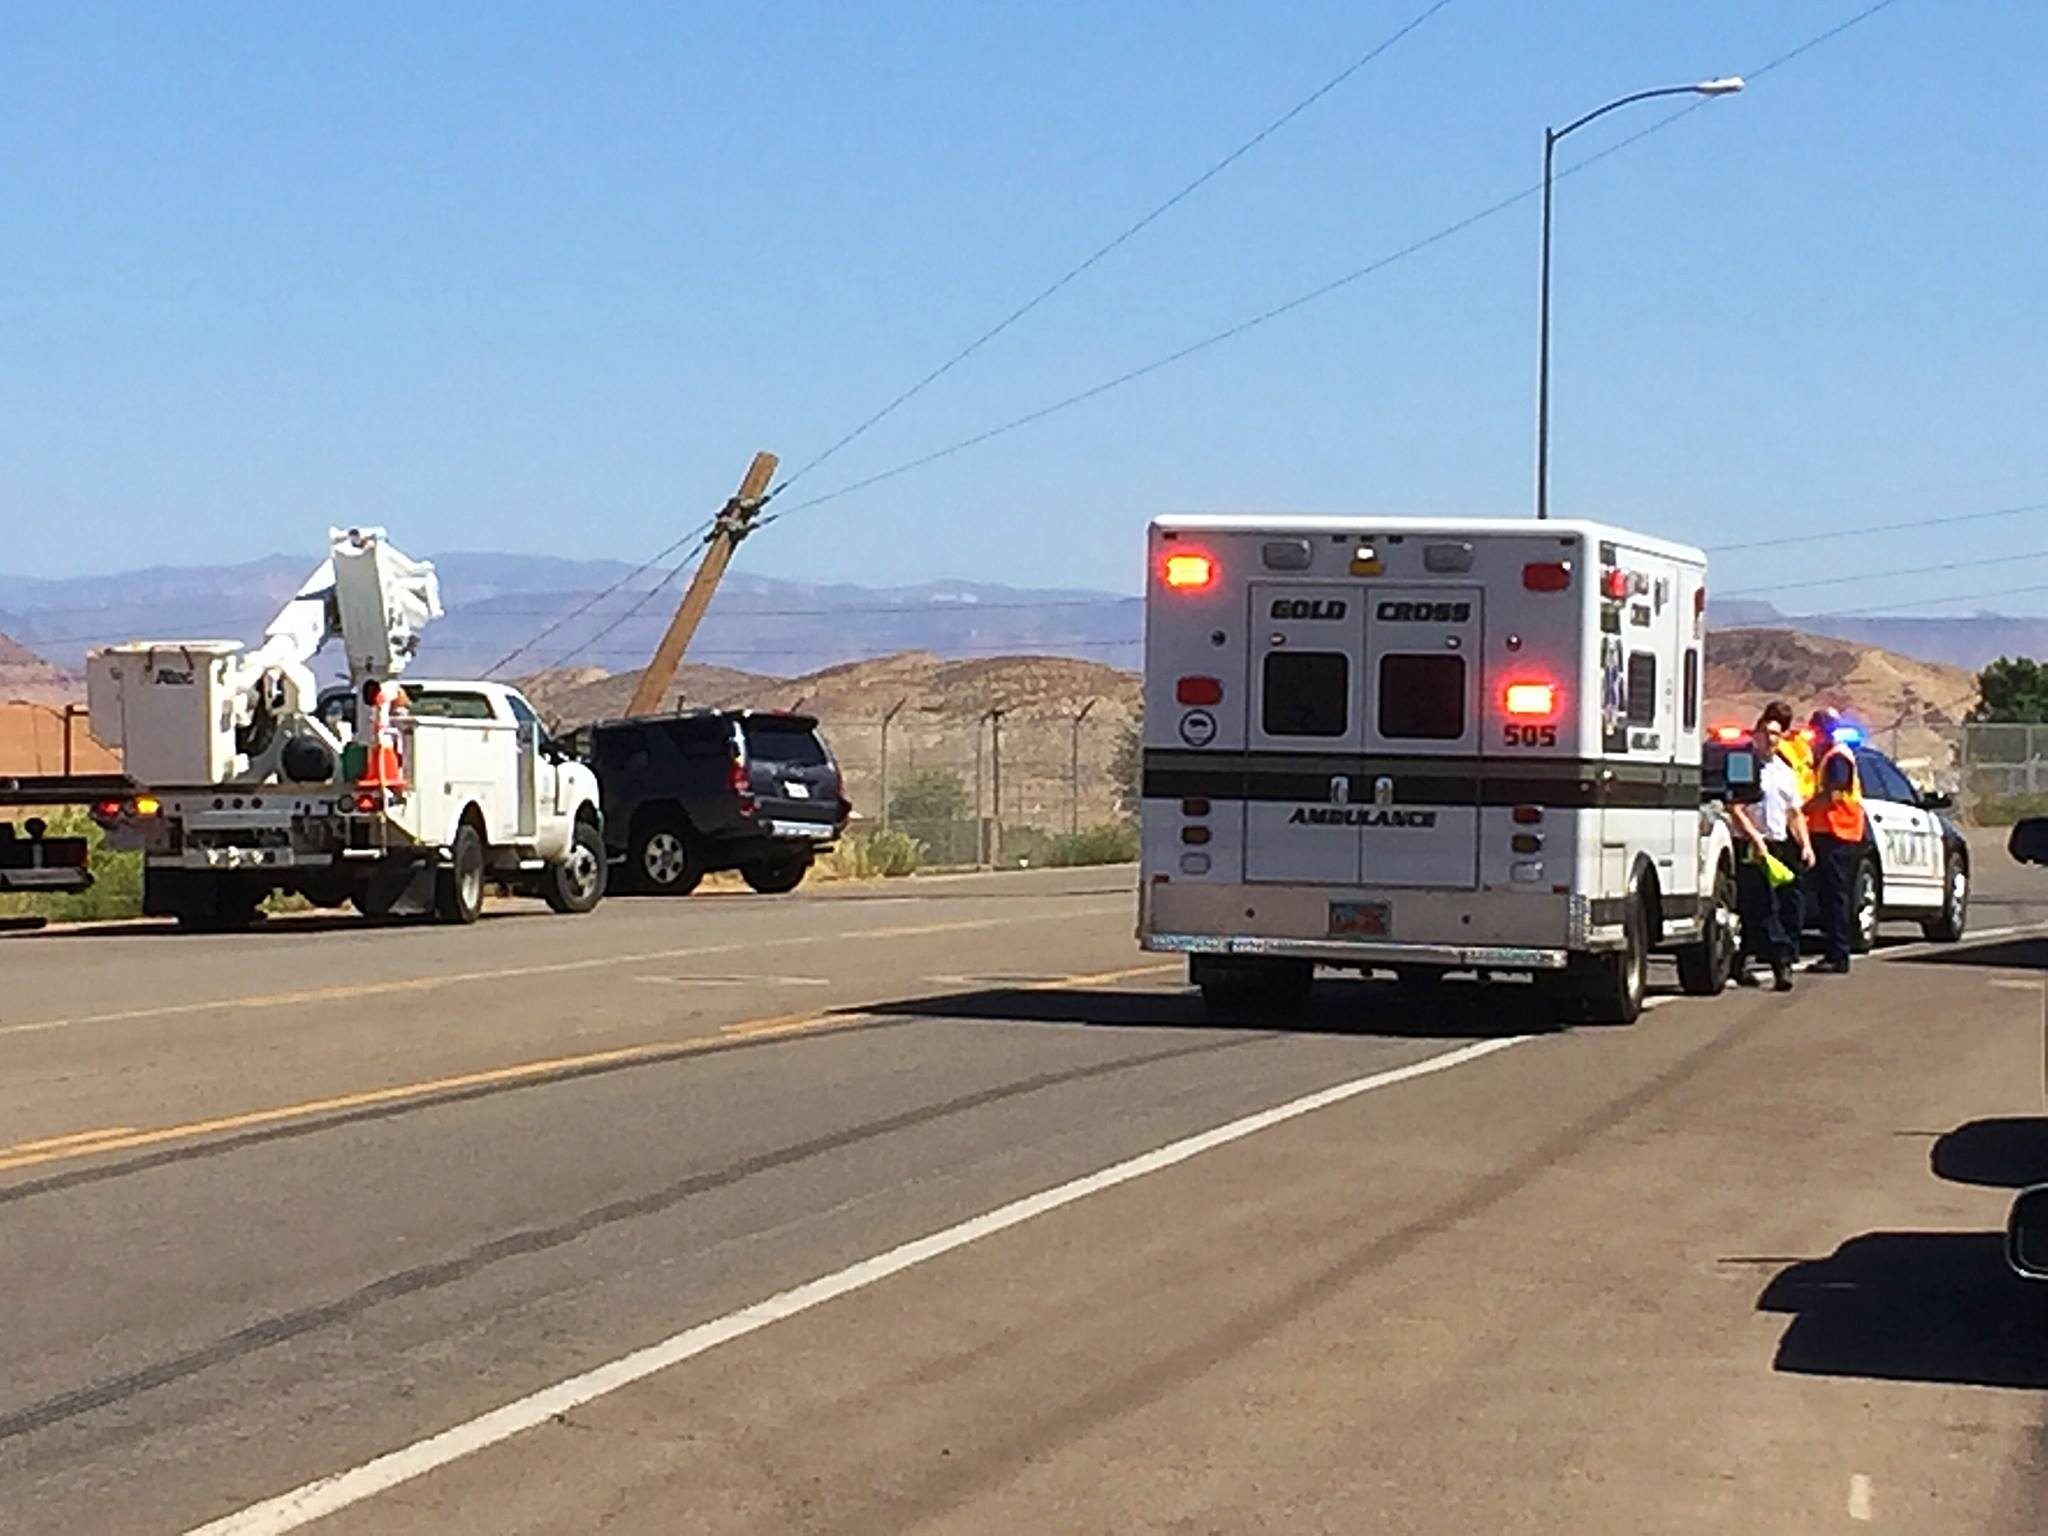 A 75-year-old man was transported to the hospital after crashing his SUV into a Washington City power pole near 1795 W. Washington Dam Road, Washington City, Utah, Sept. 8, 2016 | Photo by Kimberly Scott, St. George News